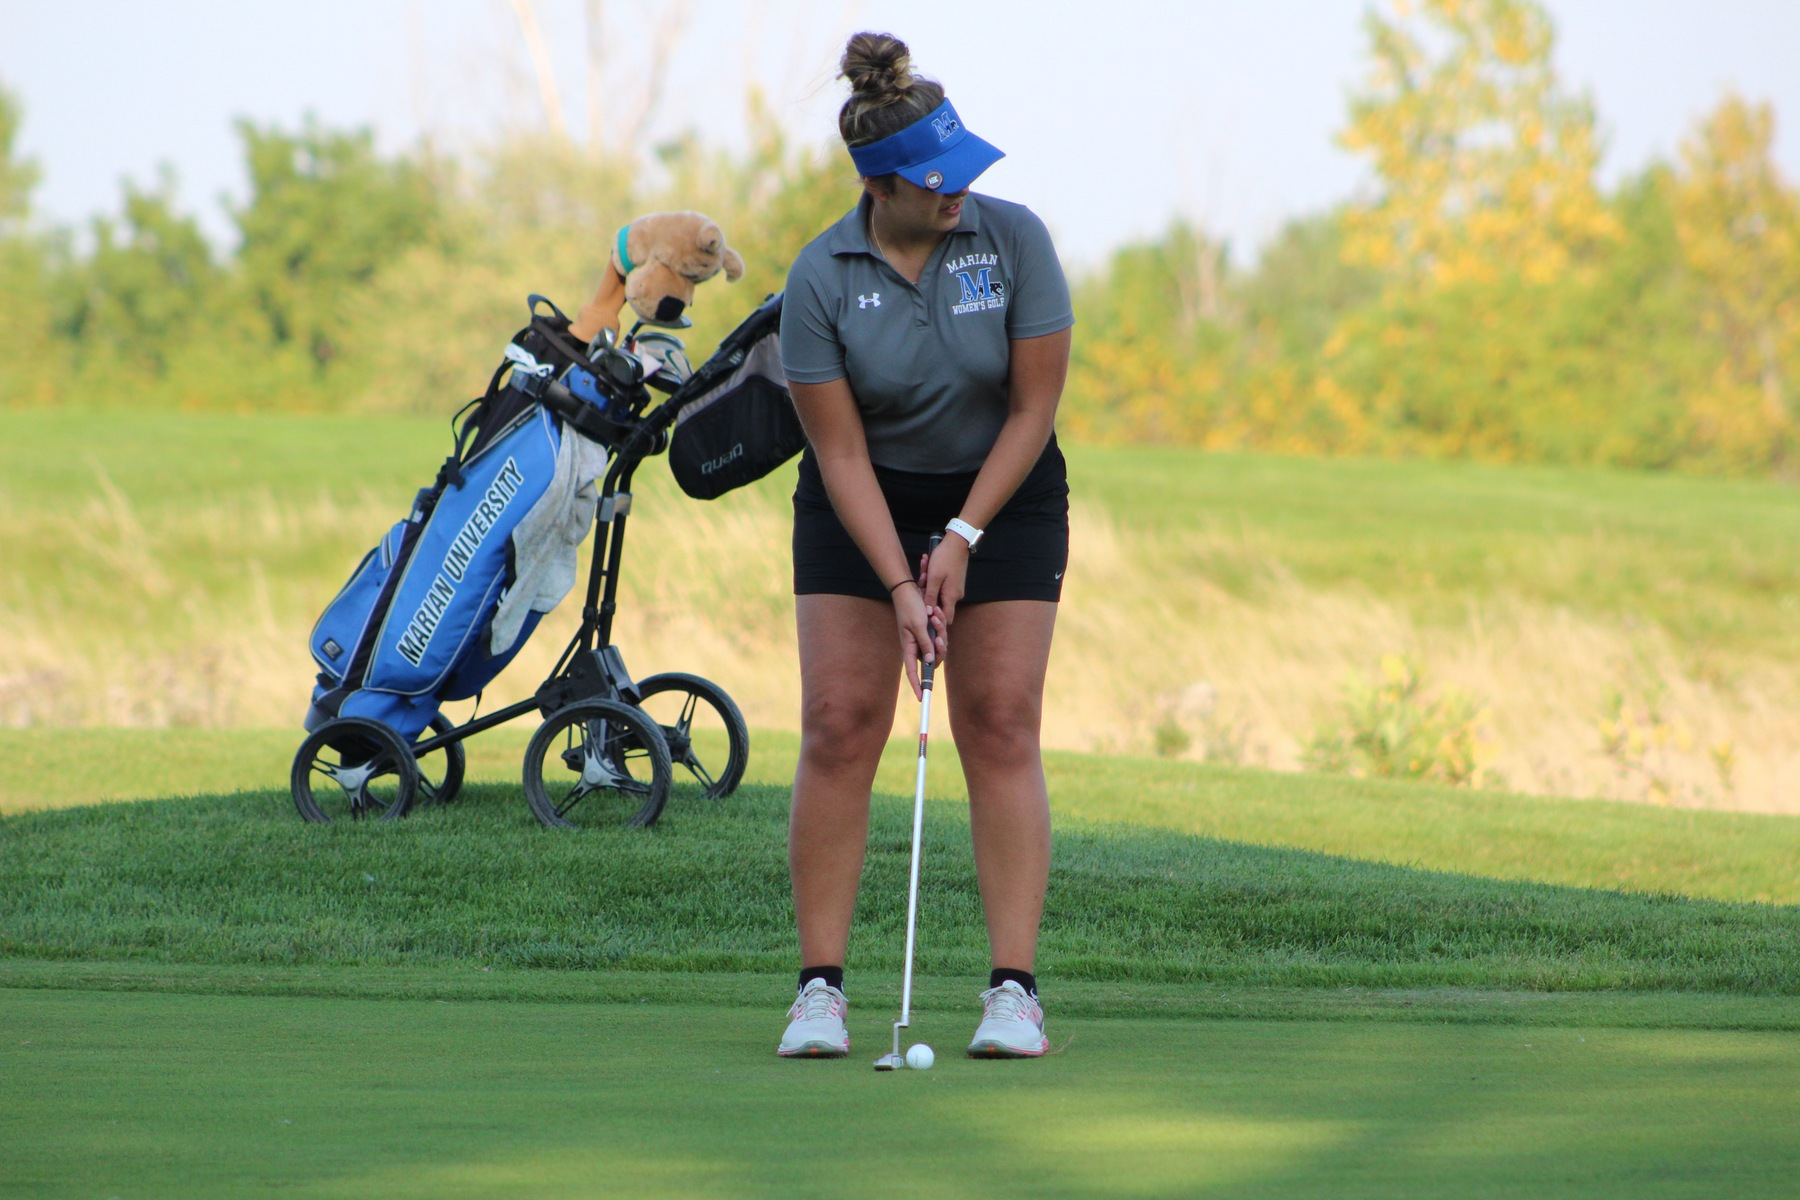 Wise tied for lead after round one of Marian Invite